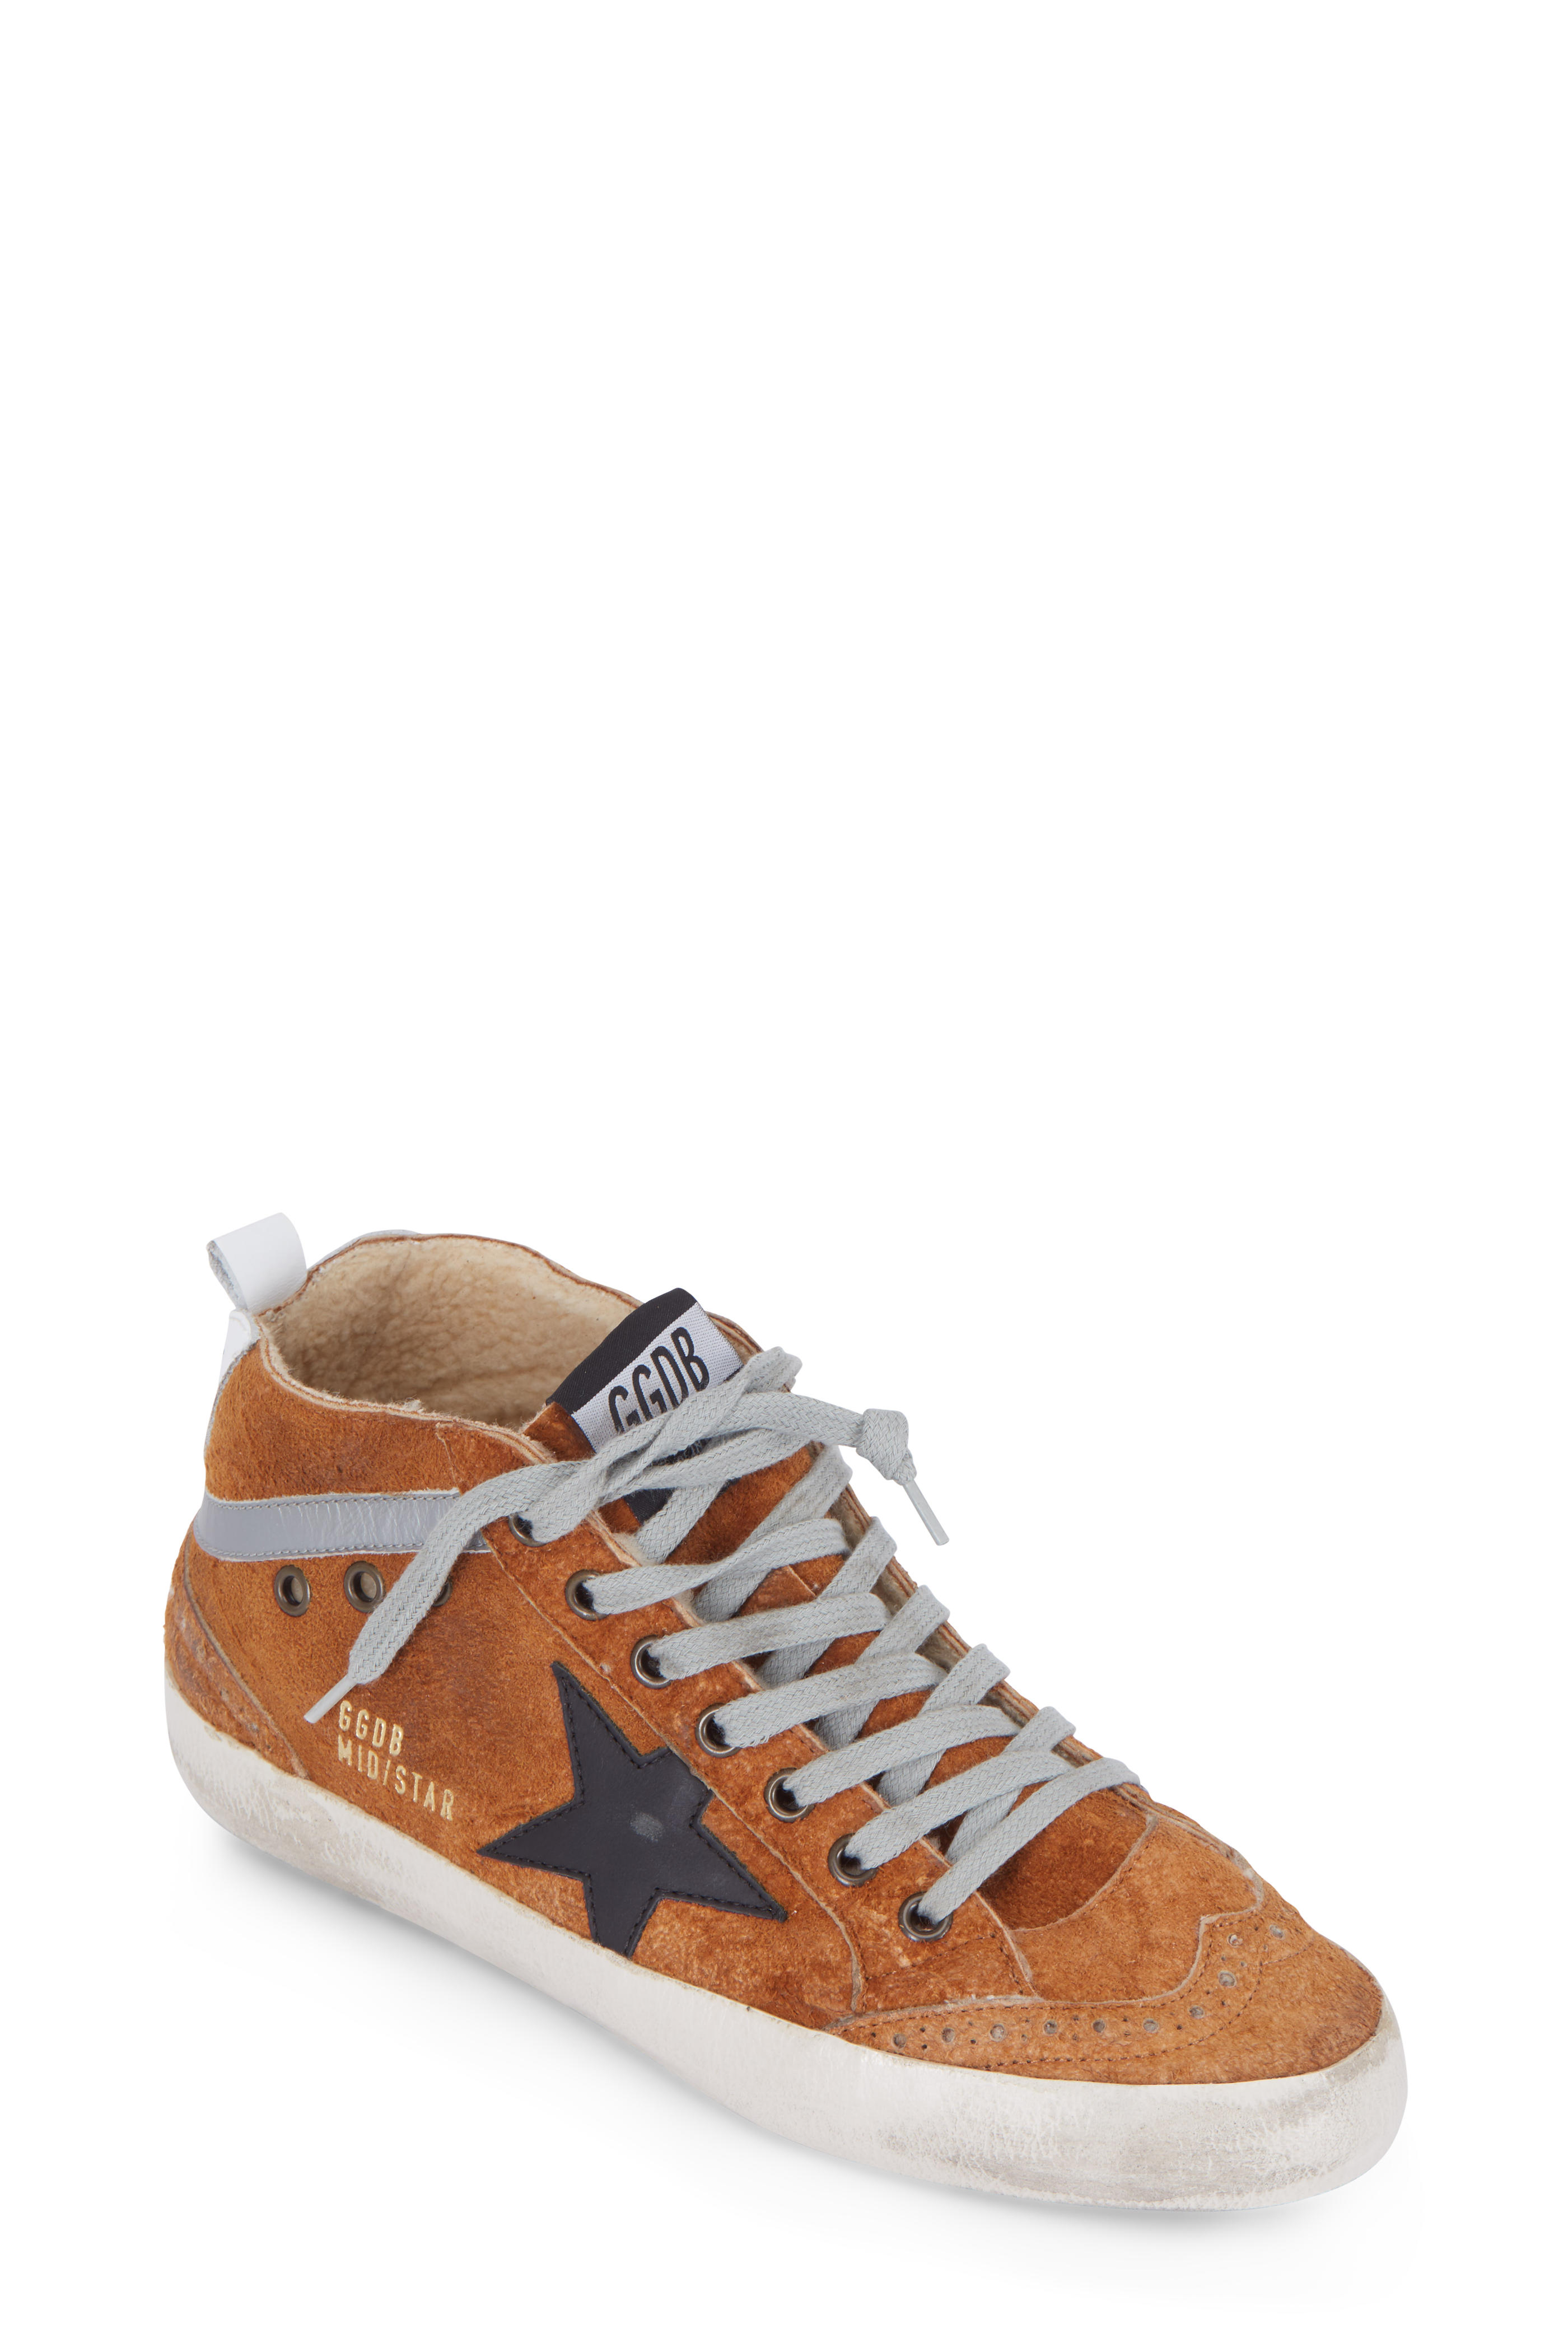 9c25482493f77 Golden Goose - Mid Star Brown Suede Shearling Lined Sneaker ...